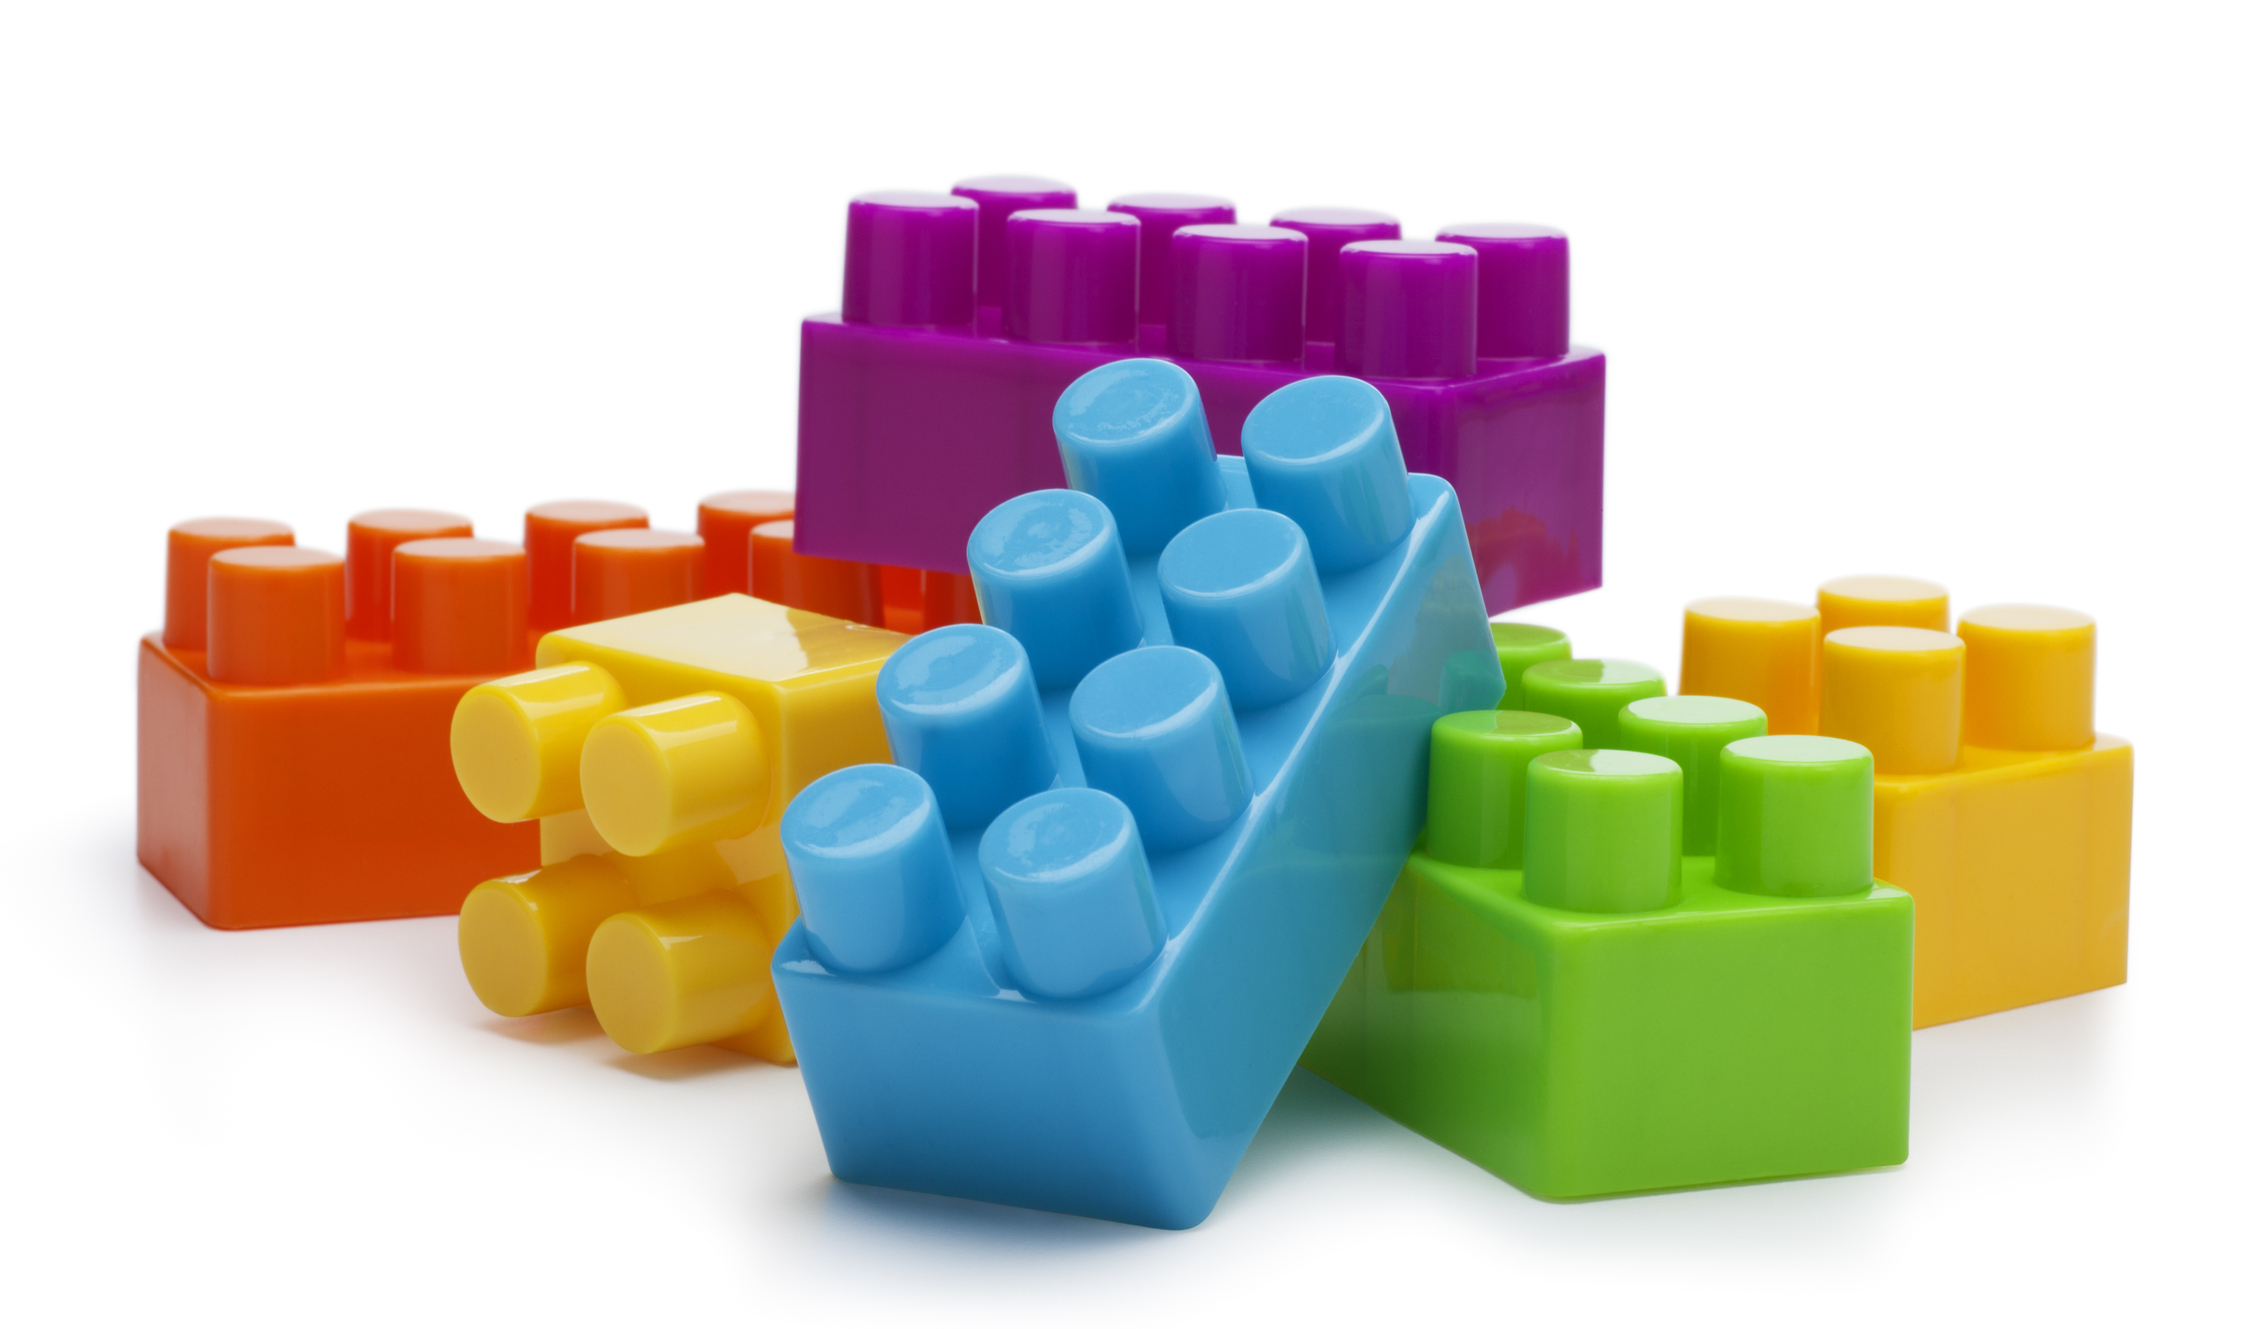 colorful stack of lego blocks